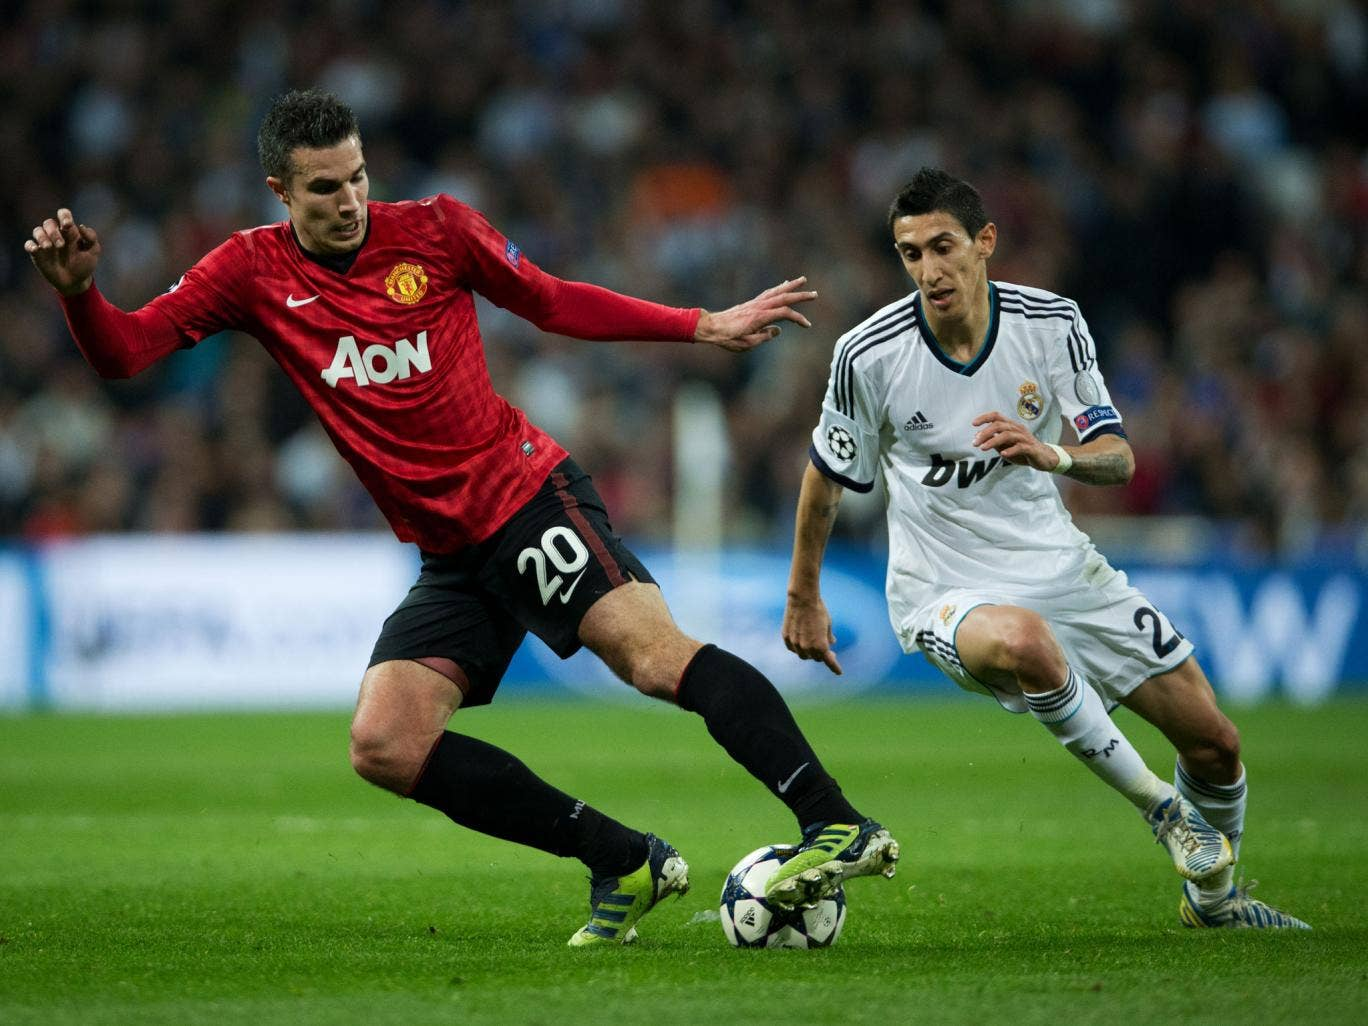 Robin van Persie of Manchester United clashes with Angel Di Maria of Real Madrid